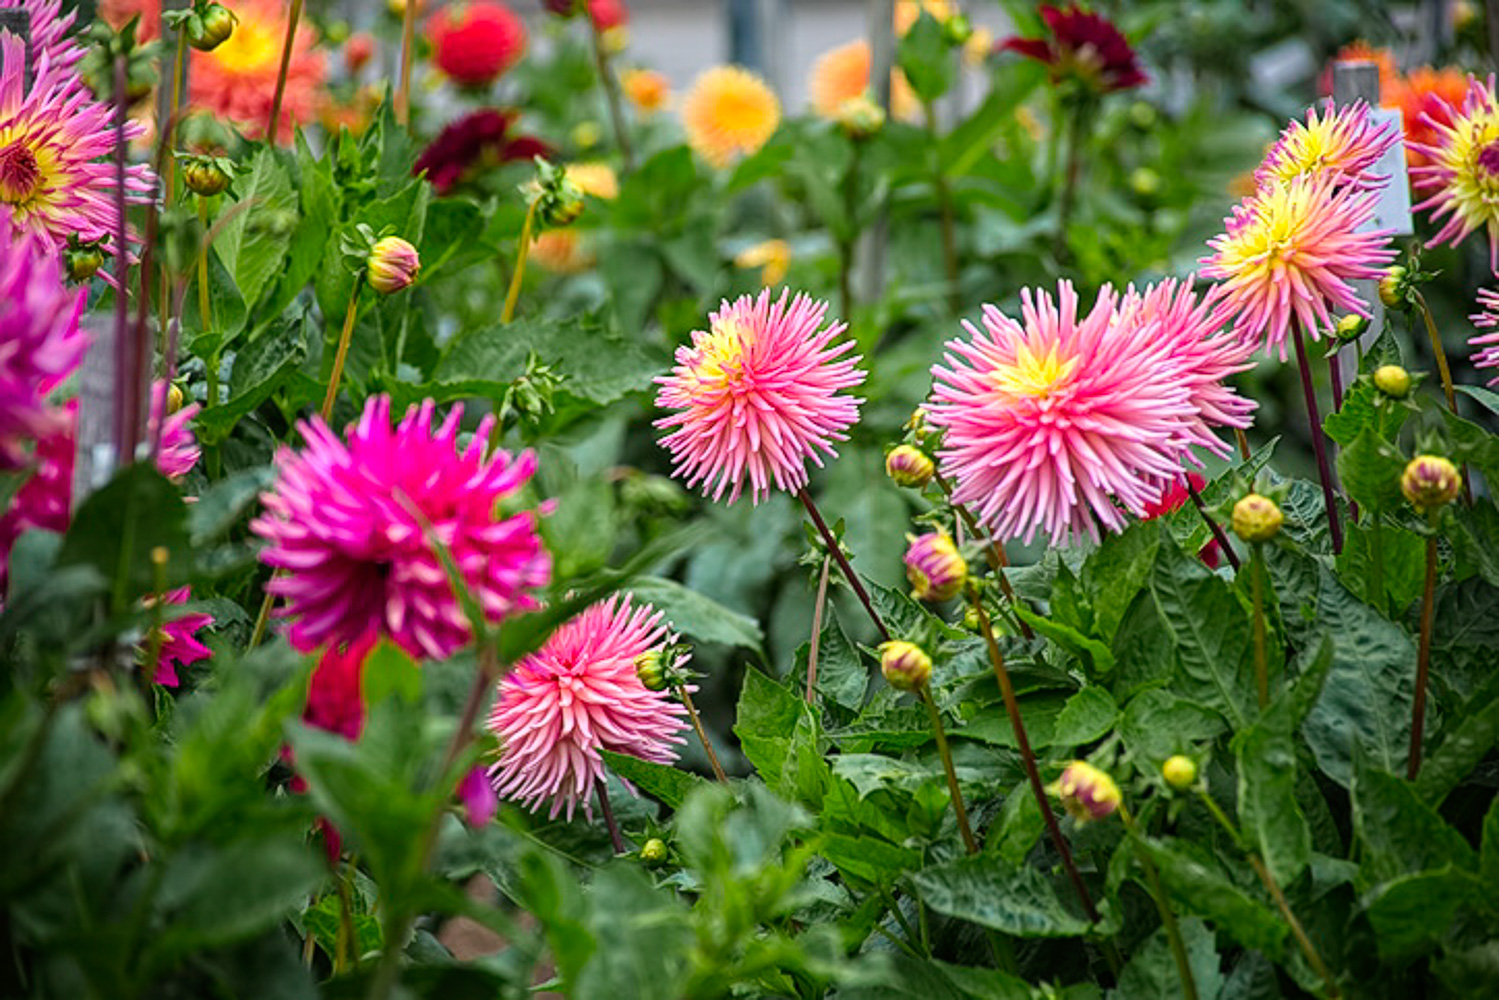 Golden Gate Park, dahlia garden